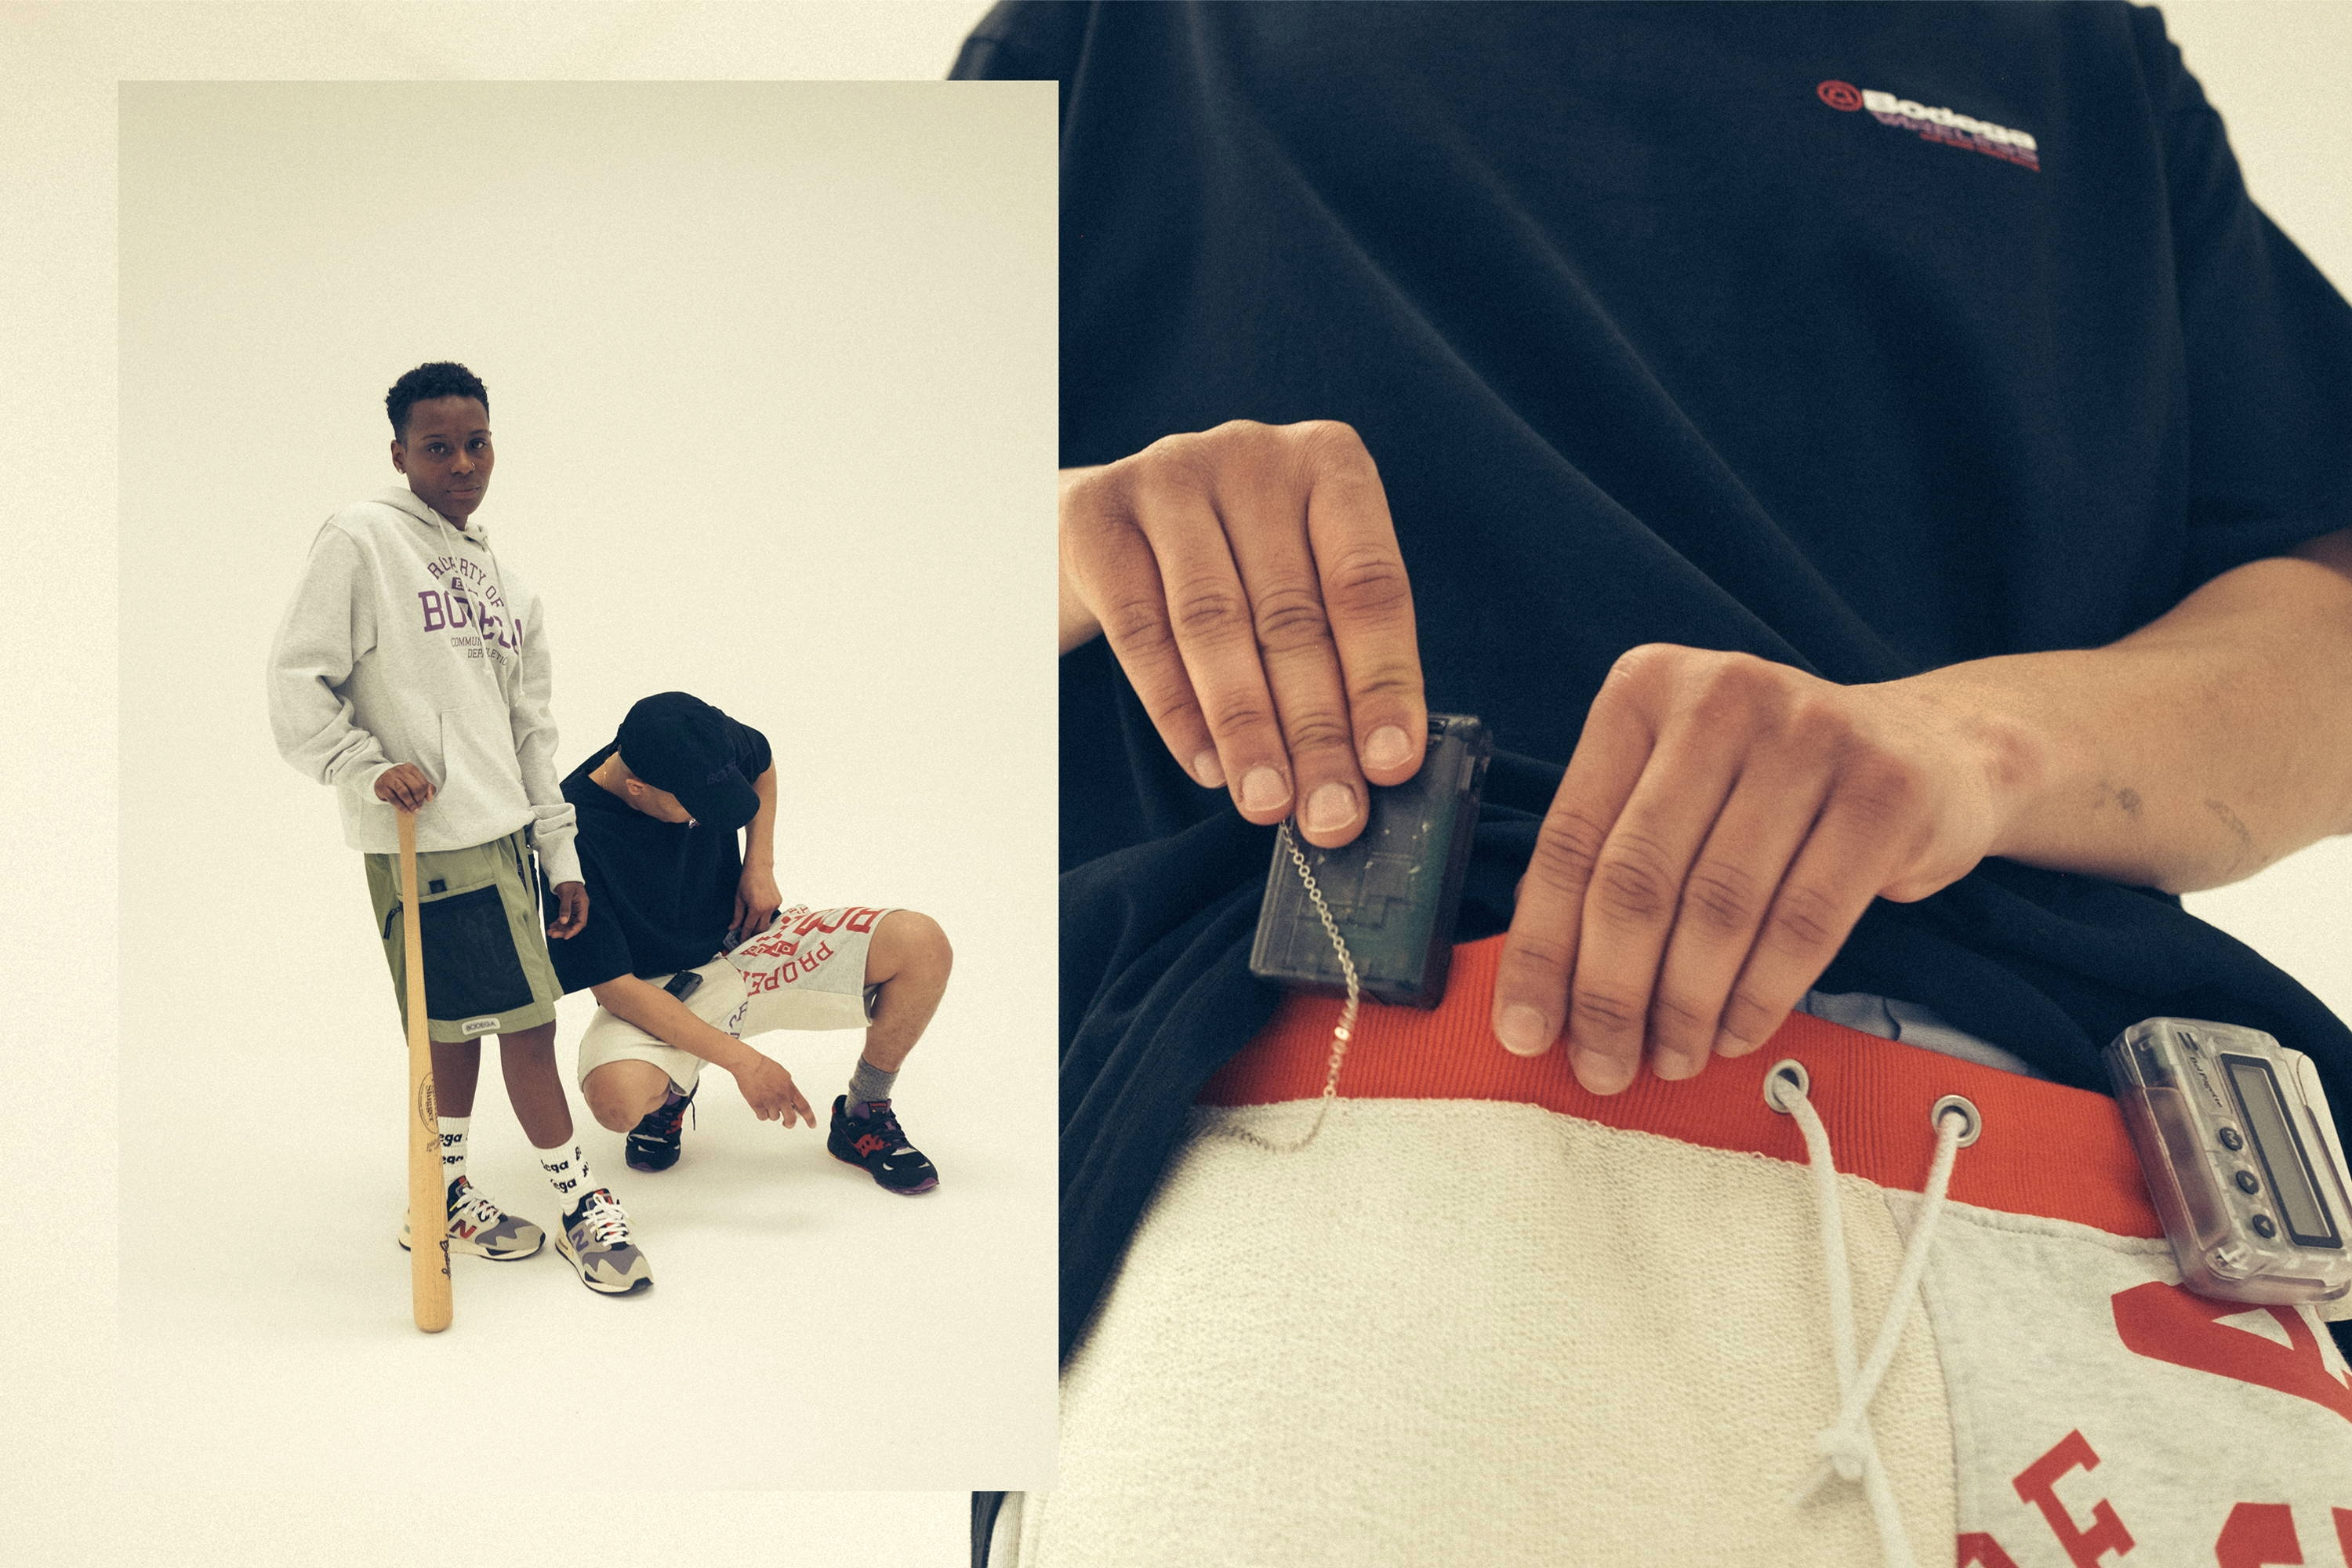 Bodega Spring/Summer 2019 Lookbook